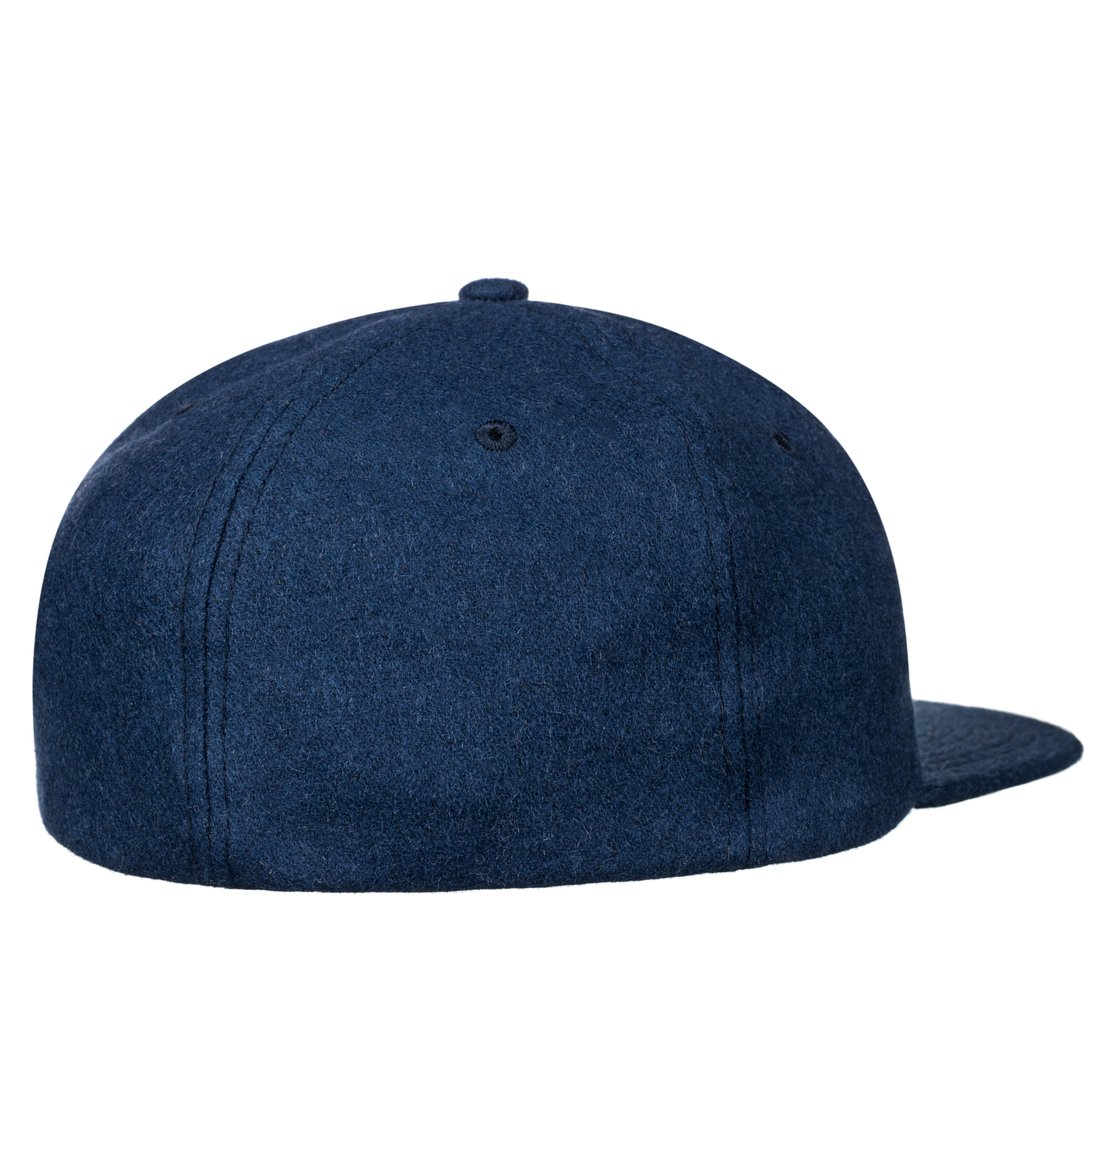 Jet Fielder M Hats Dc Shoes